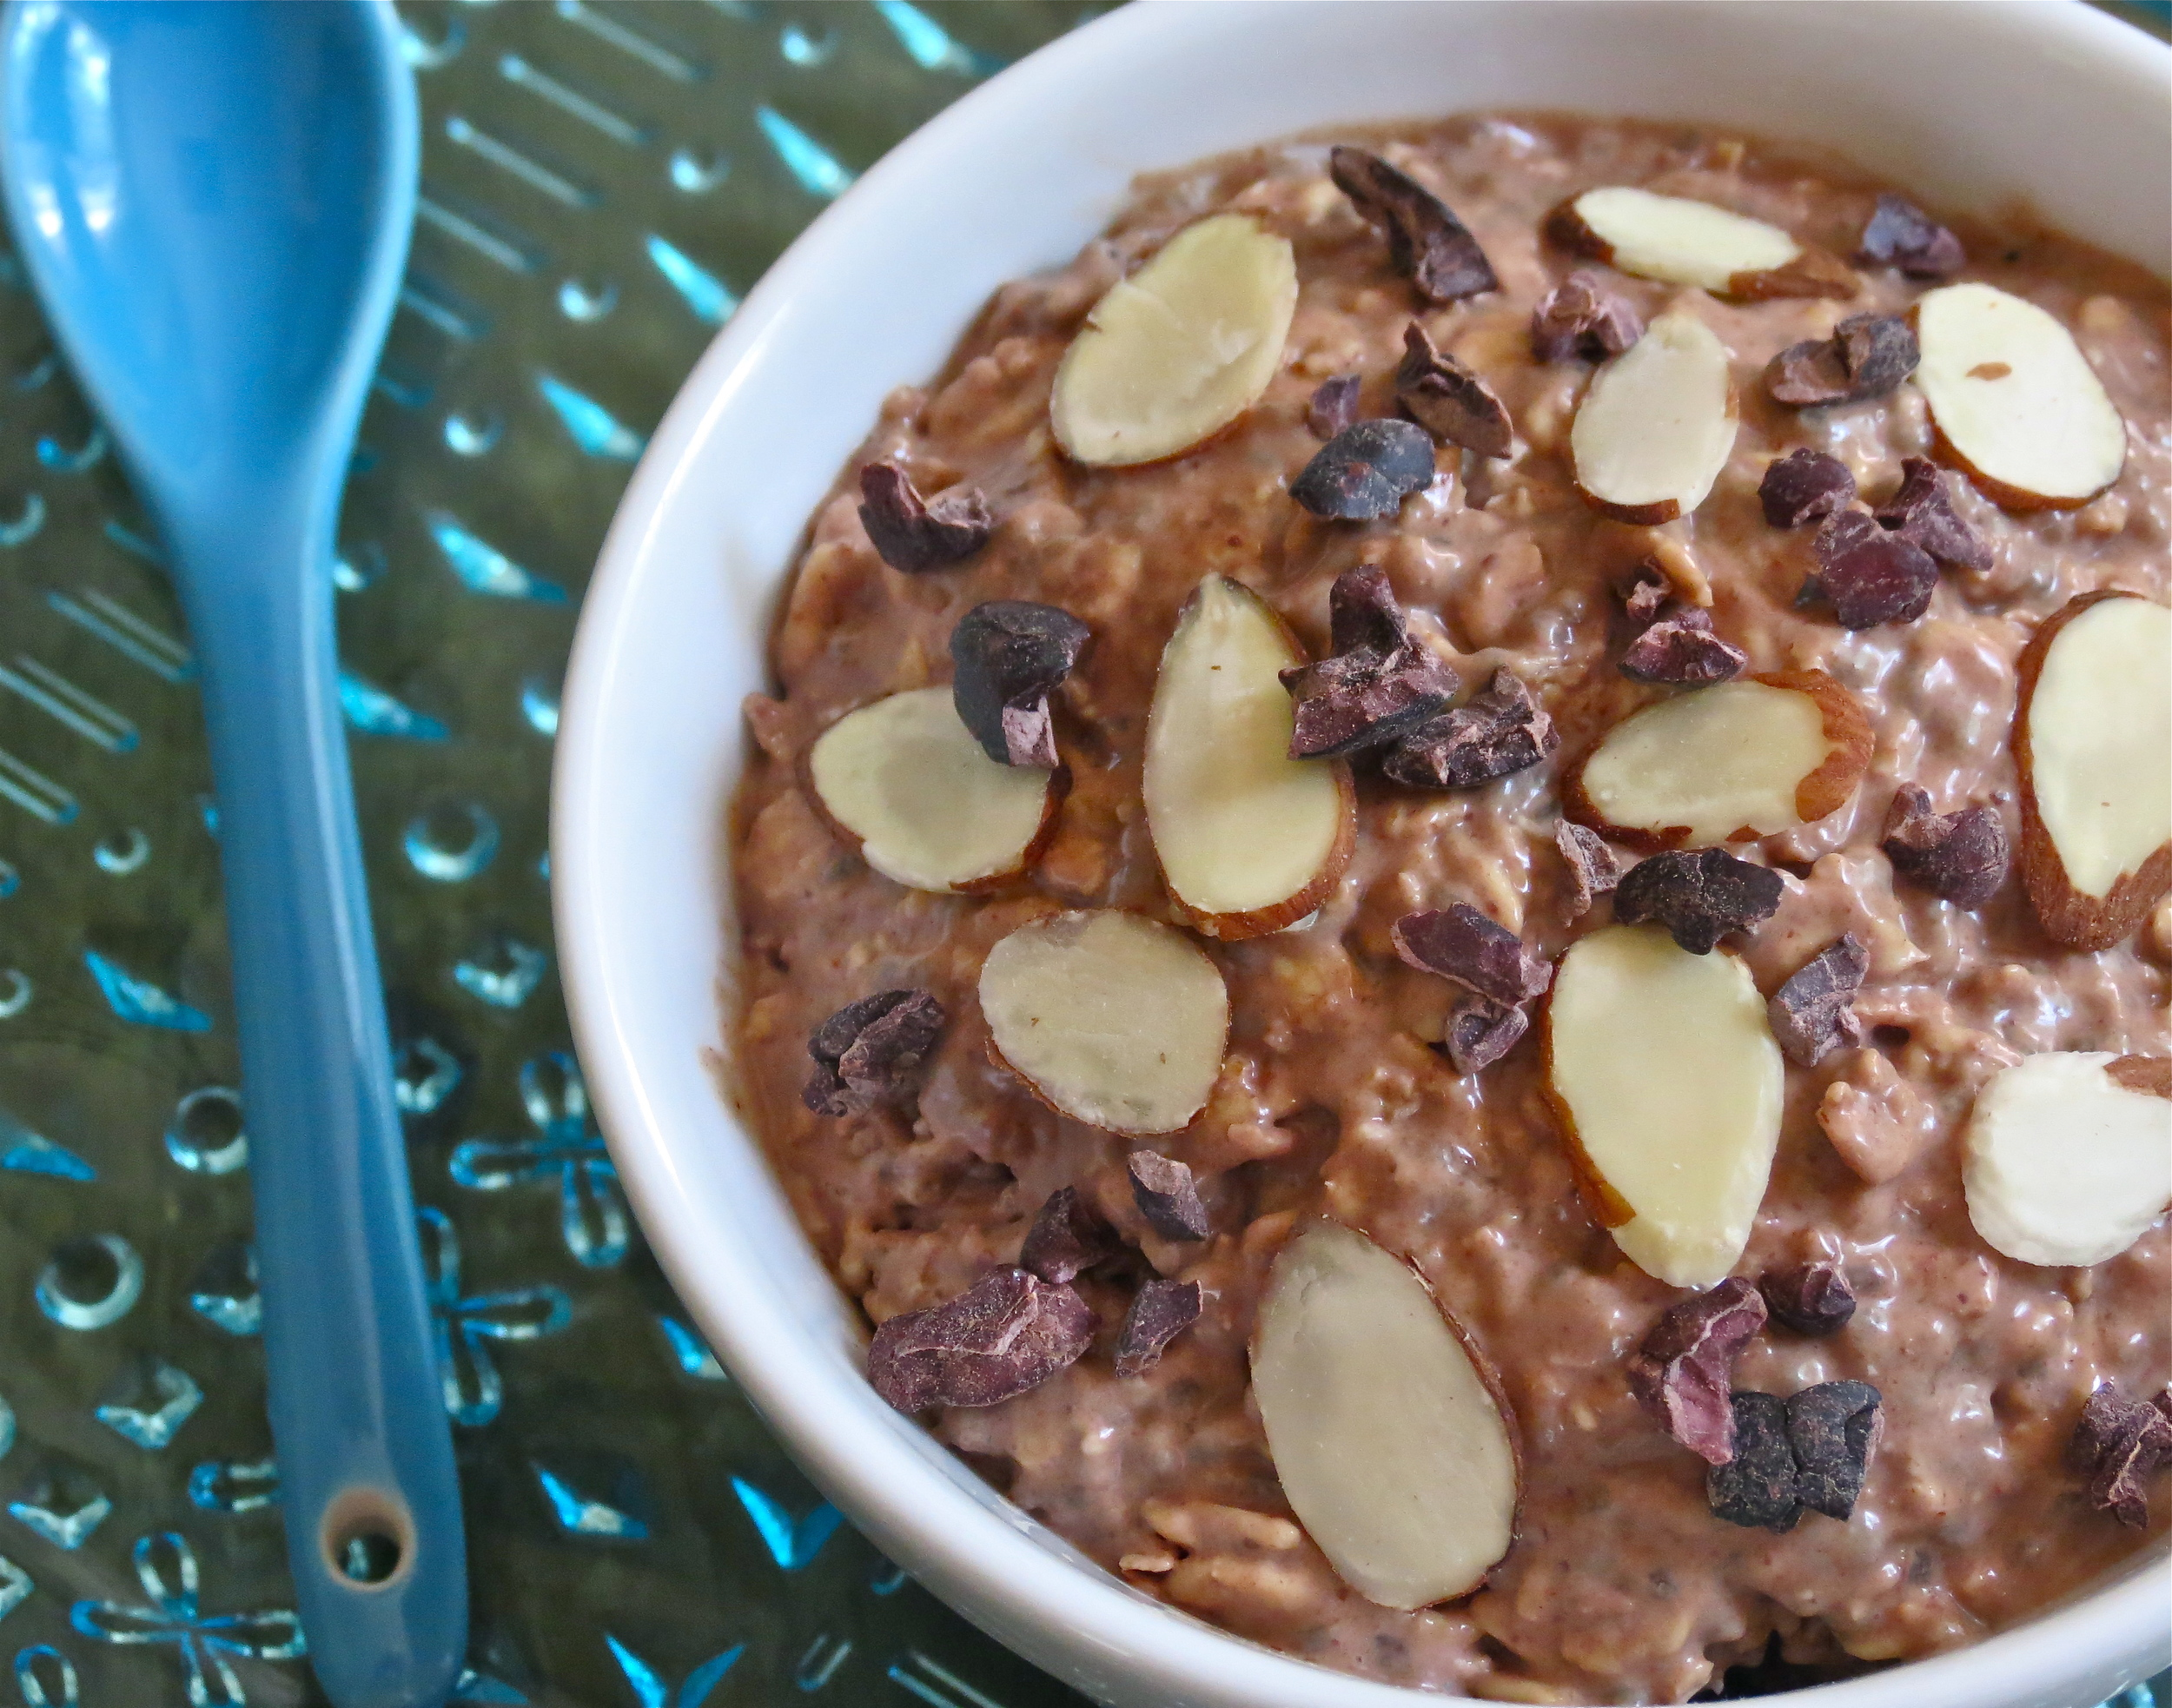 Chocolate Almond in a bowl (topped with some  cacao nibs )